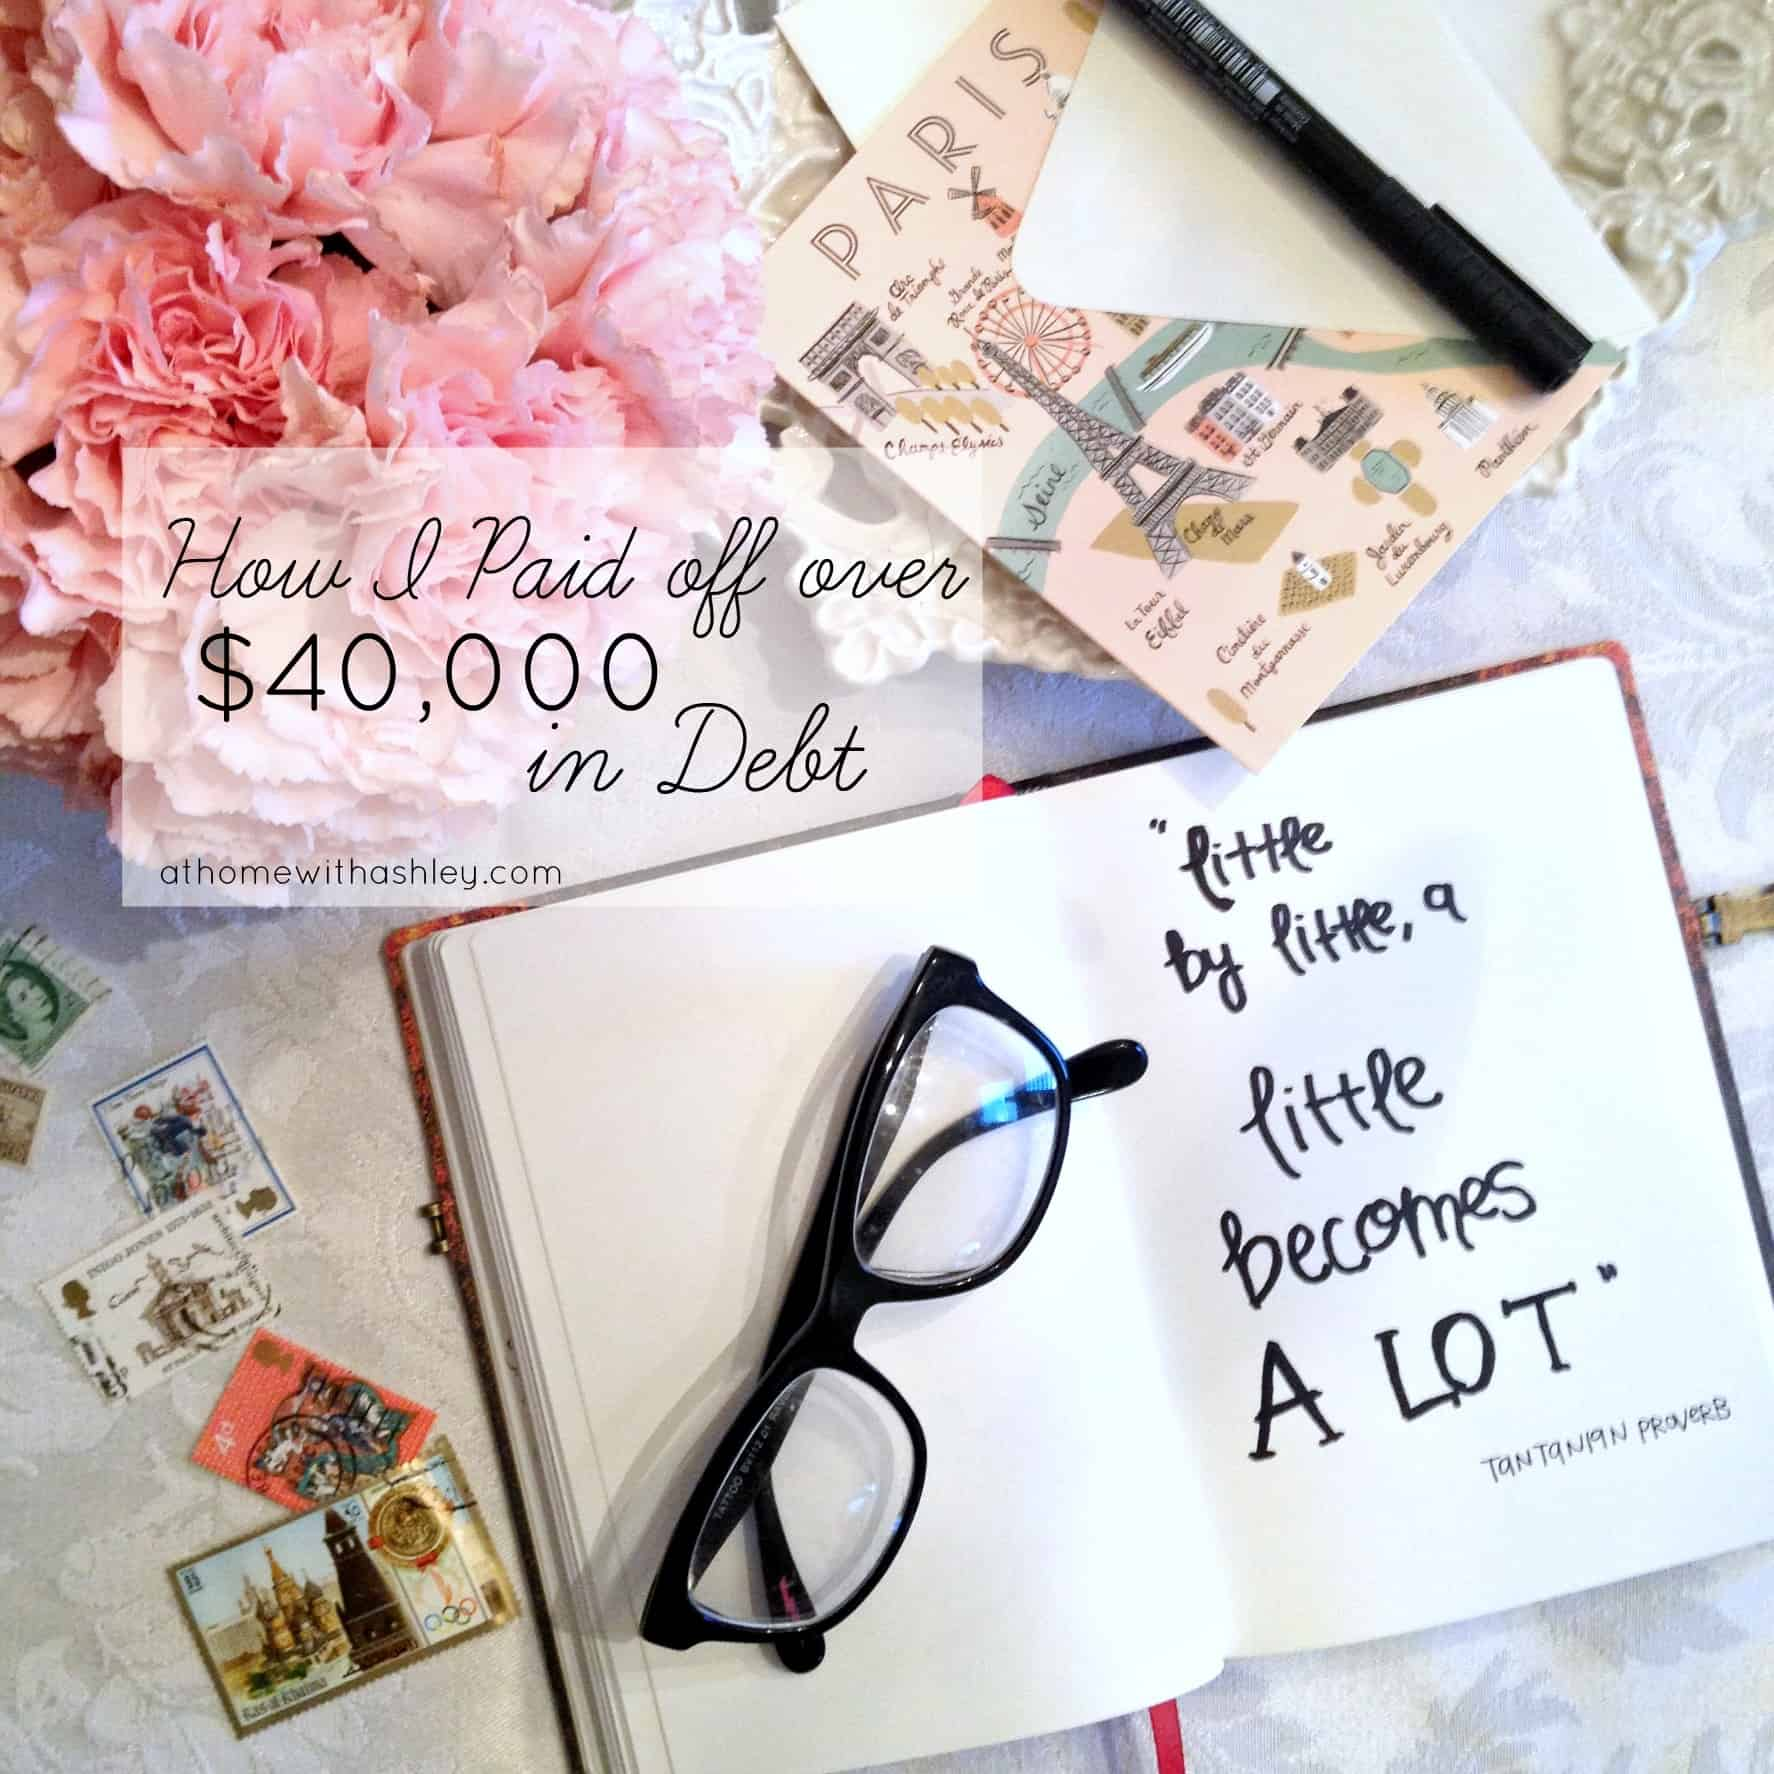 How I Paid off over $40 000 in Debt at home with Ashley